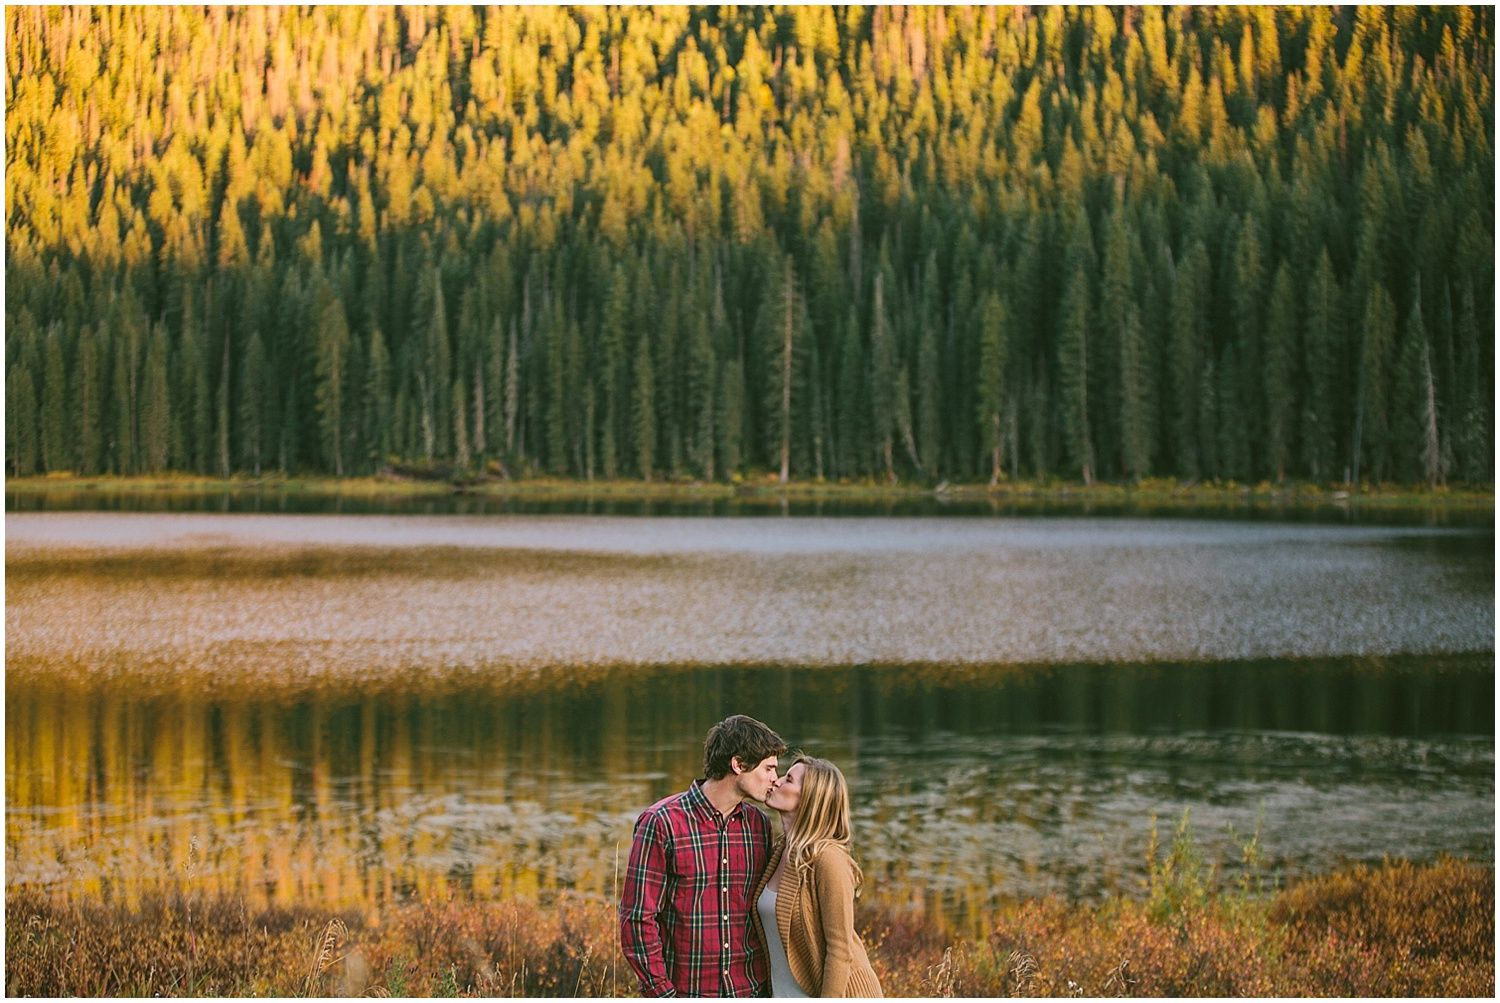 Engagement session by a lake in the mountains Colorado - Perfection!